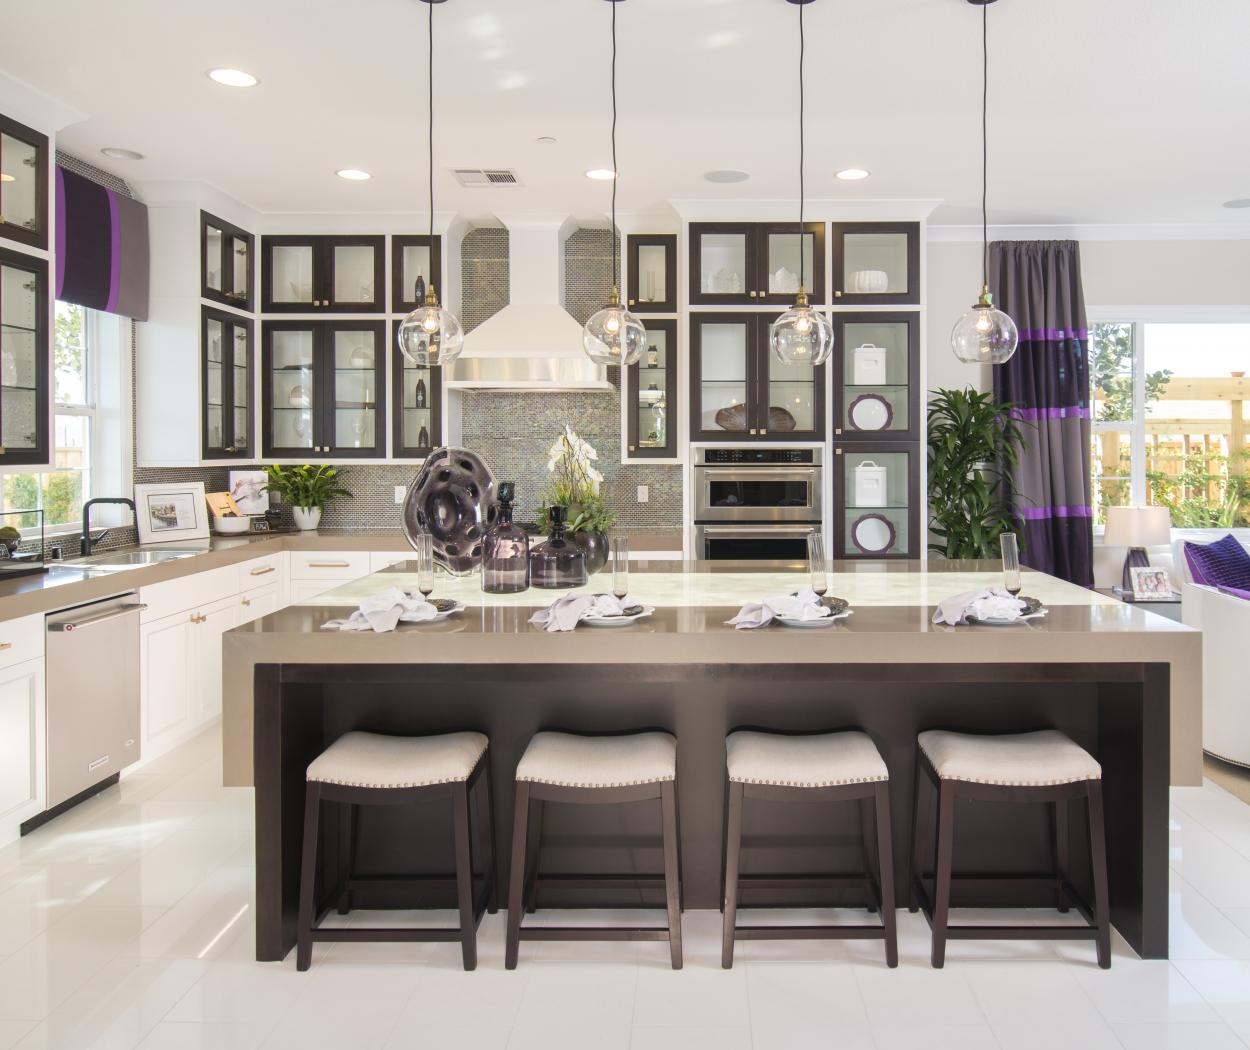 Beautiful White Kitchen with Espresso Stained Door Frames, Glass Doors, Waterfall Island and Gold Knobs - Pulls